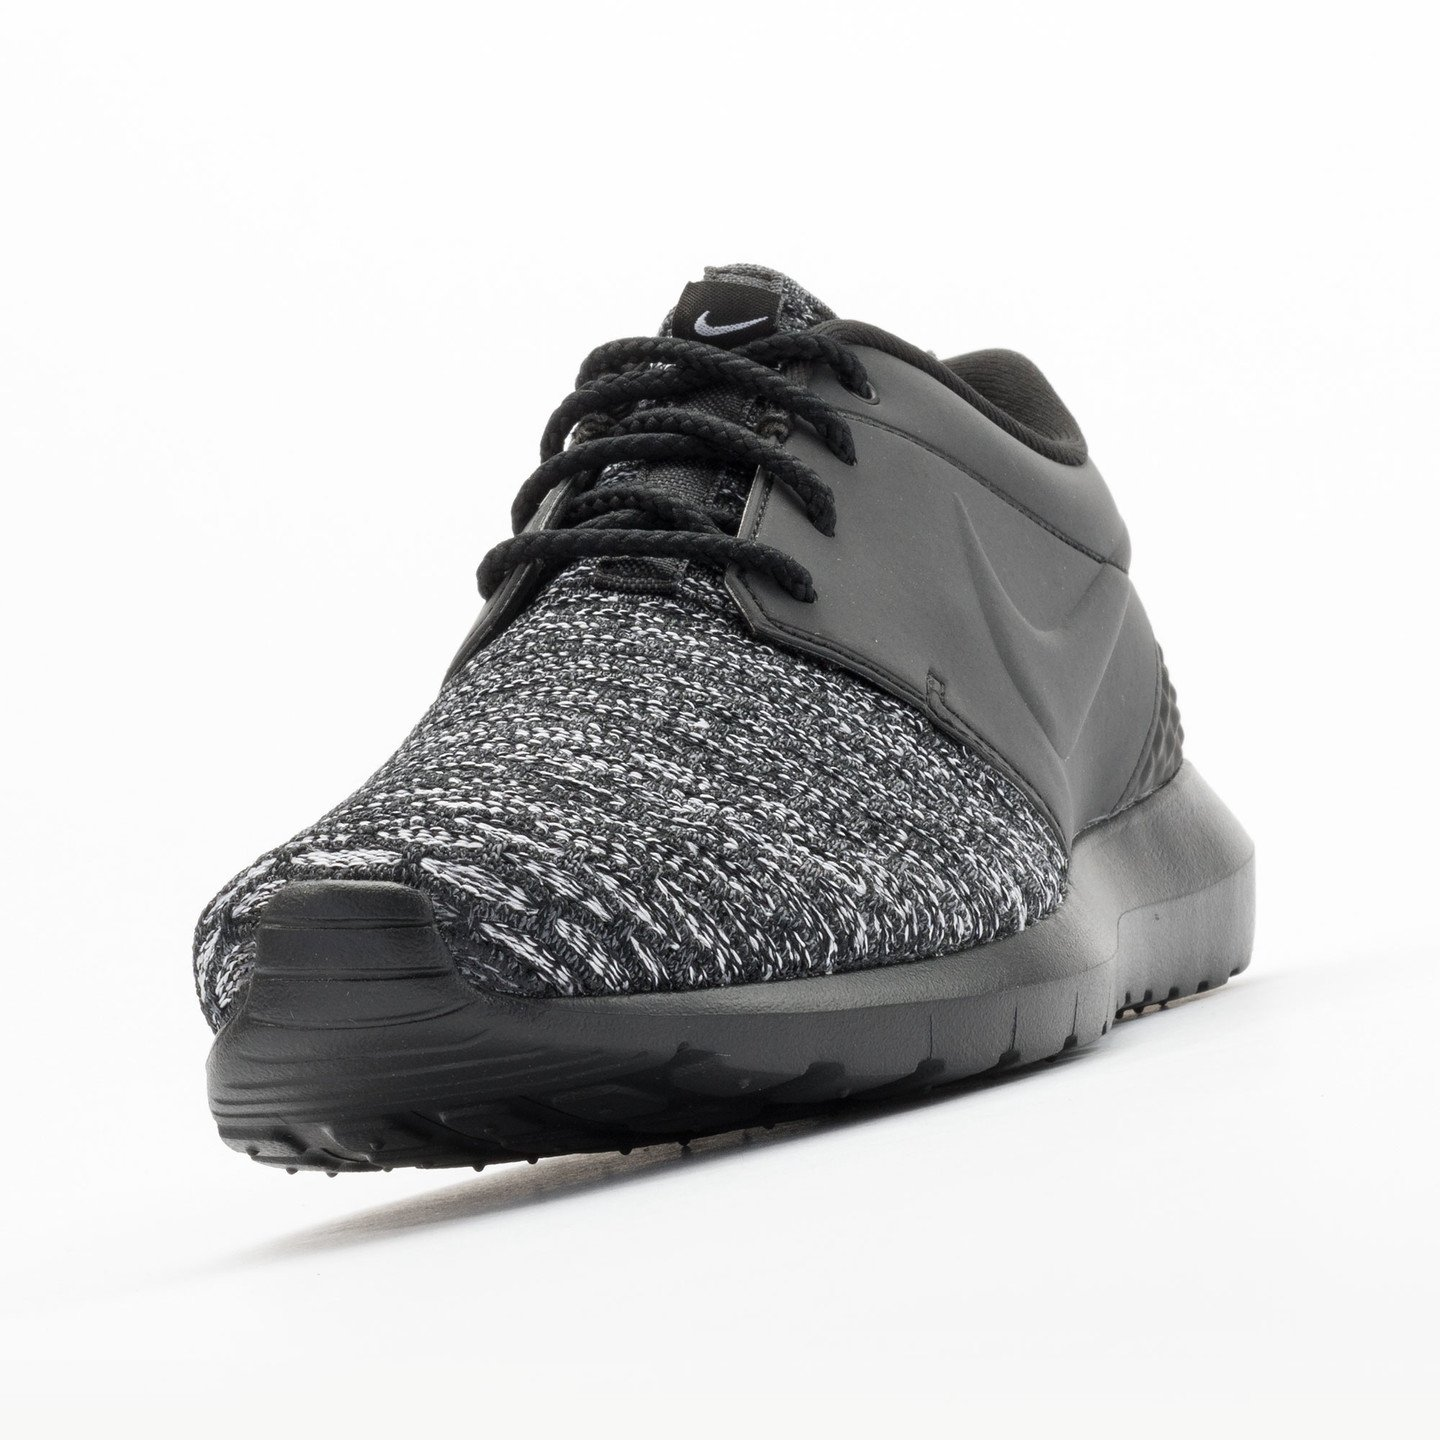 Nike Roshe NM Flyknit Premium Black / Black / Dark Grey / White 746825-002-43